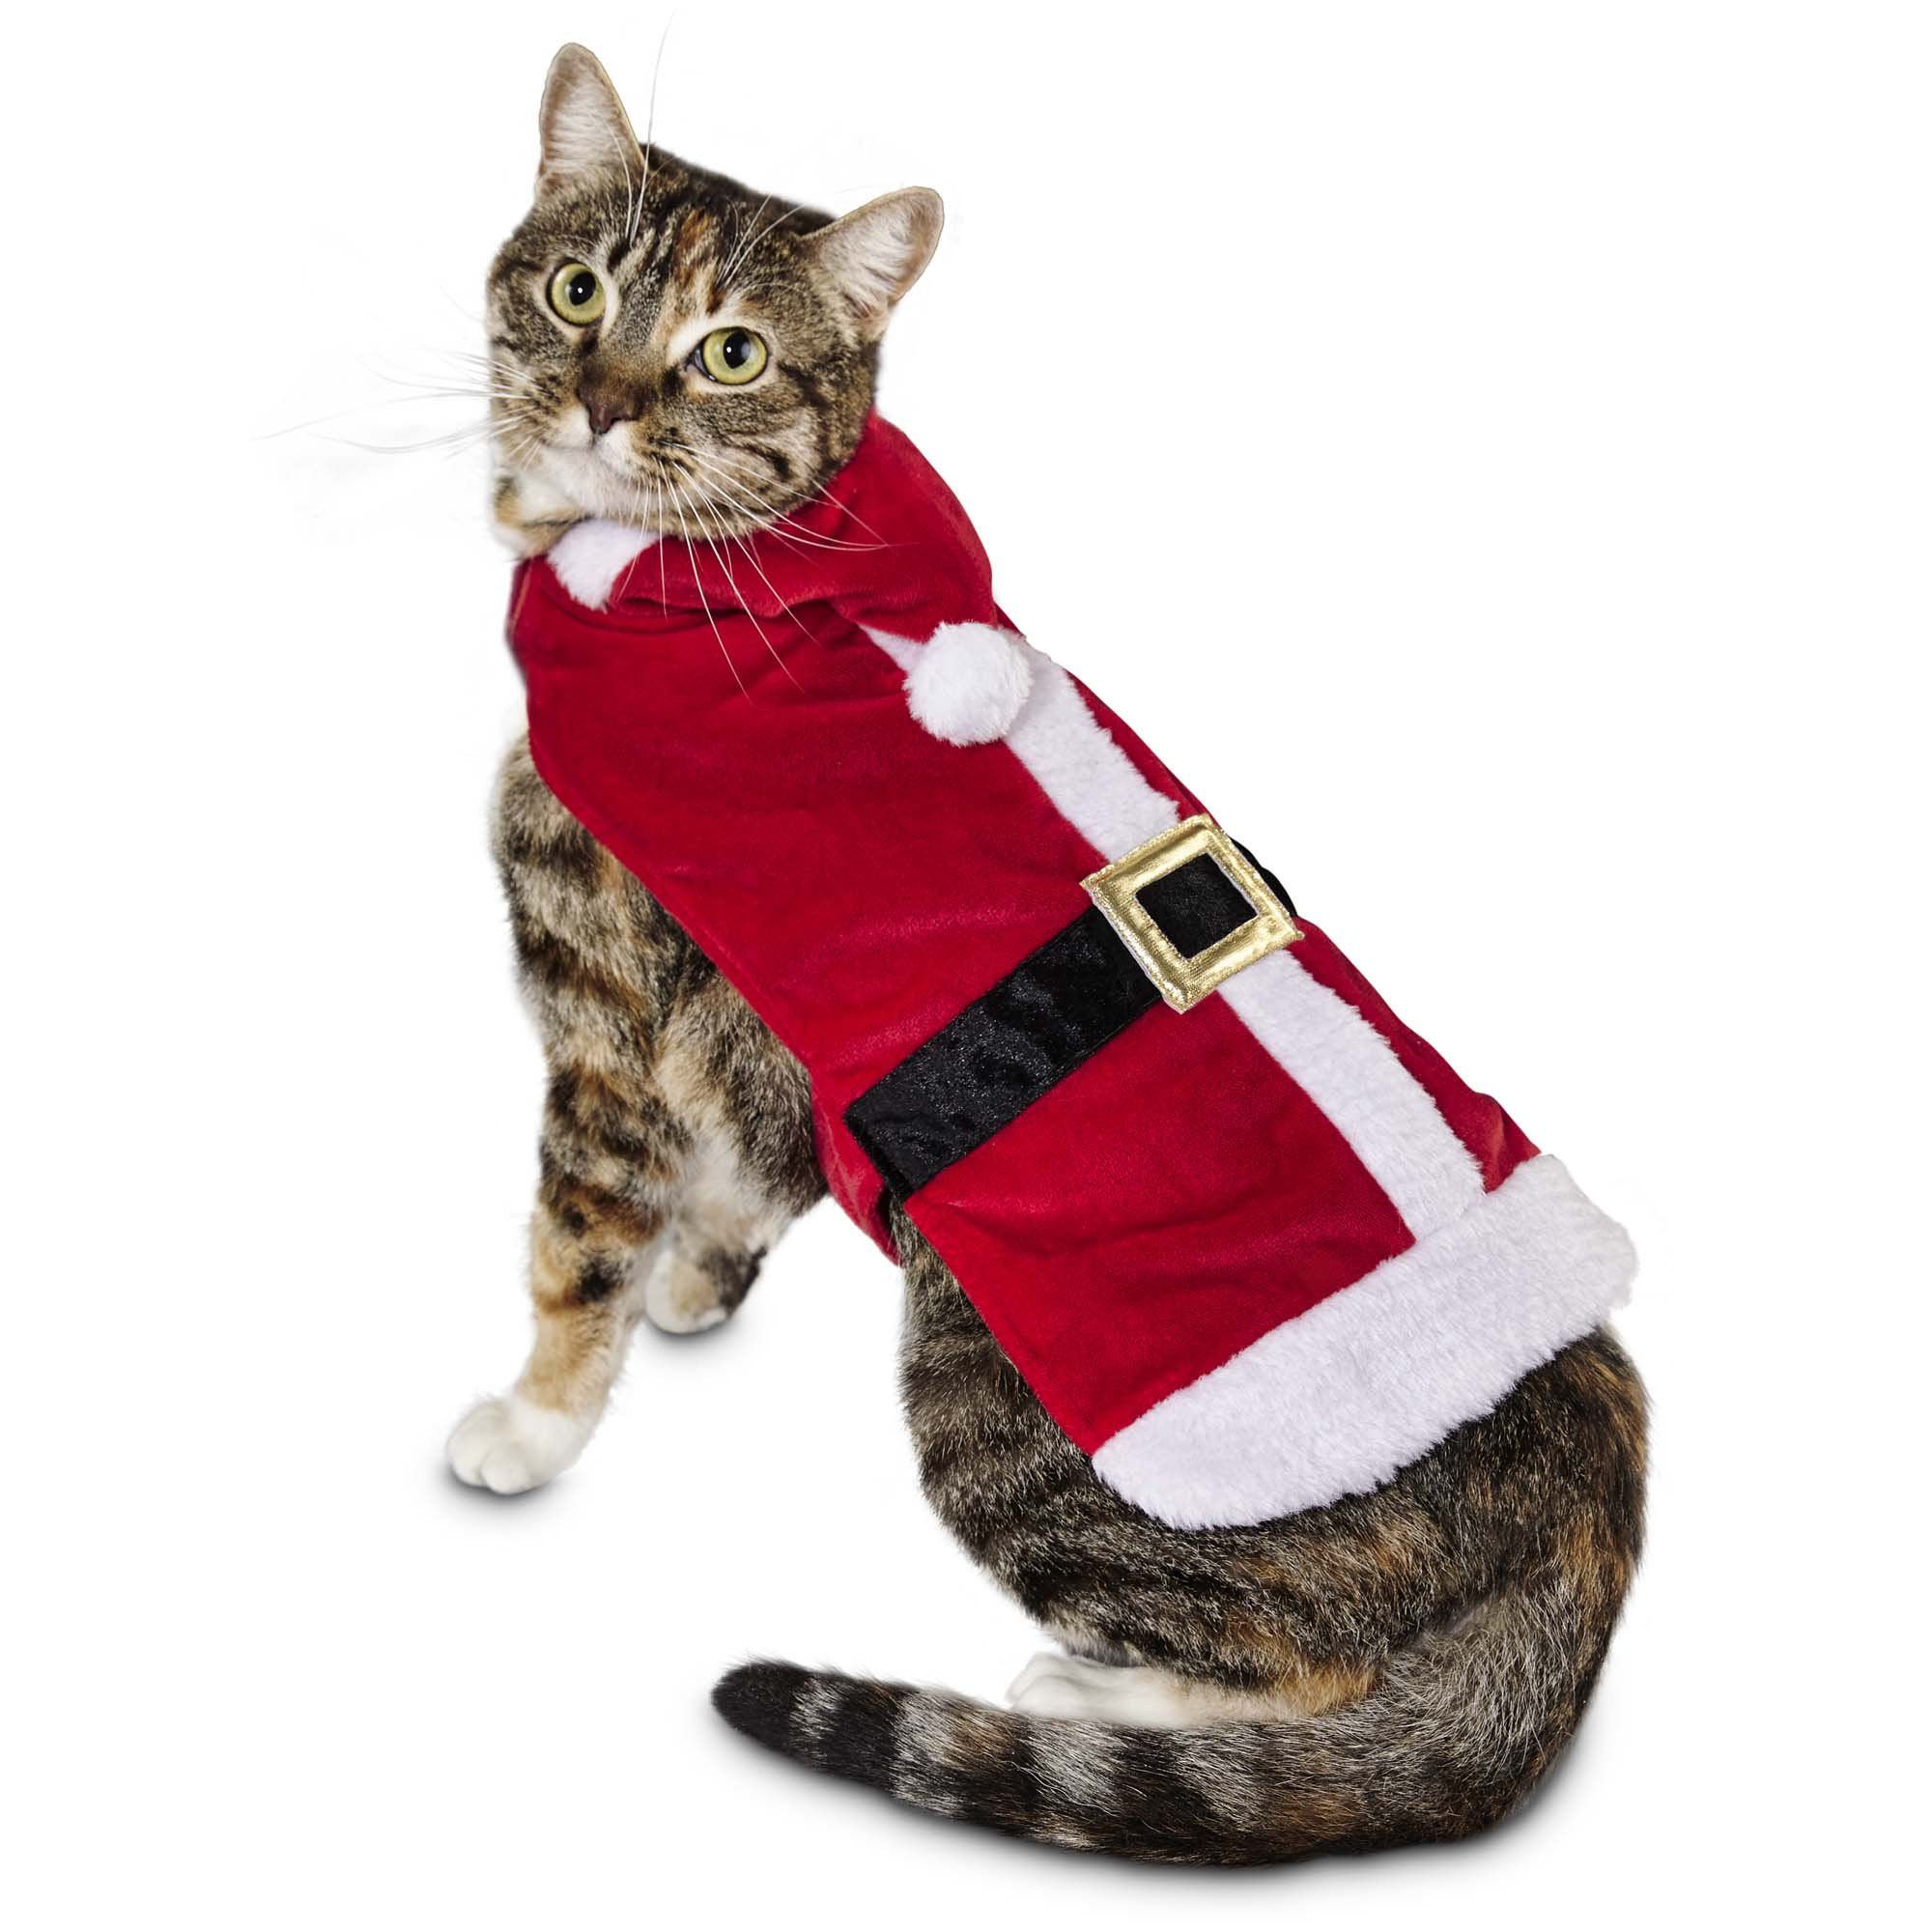 Encourage Your Cat To Stay On The Nice List With Holiday Must Haves From The Petco Exclusive Time For Joy Collection Cat Costumes Petco Cat Clothes